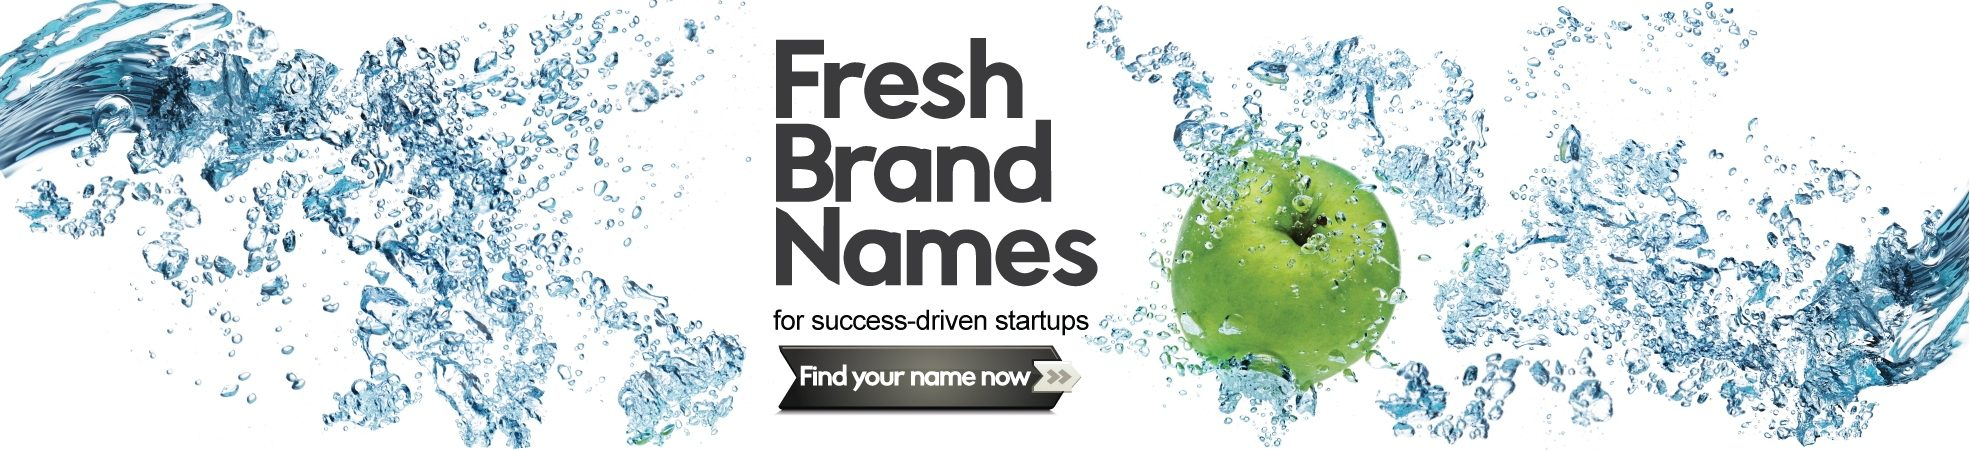 FIND YOUR COMPANY NAME NOW